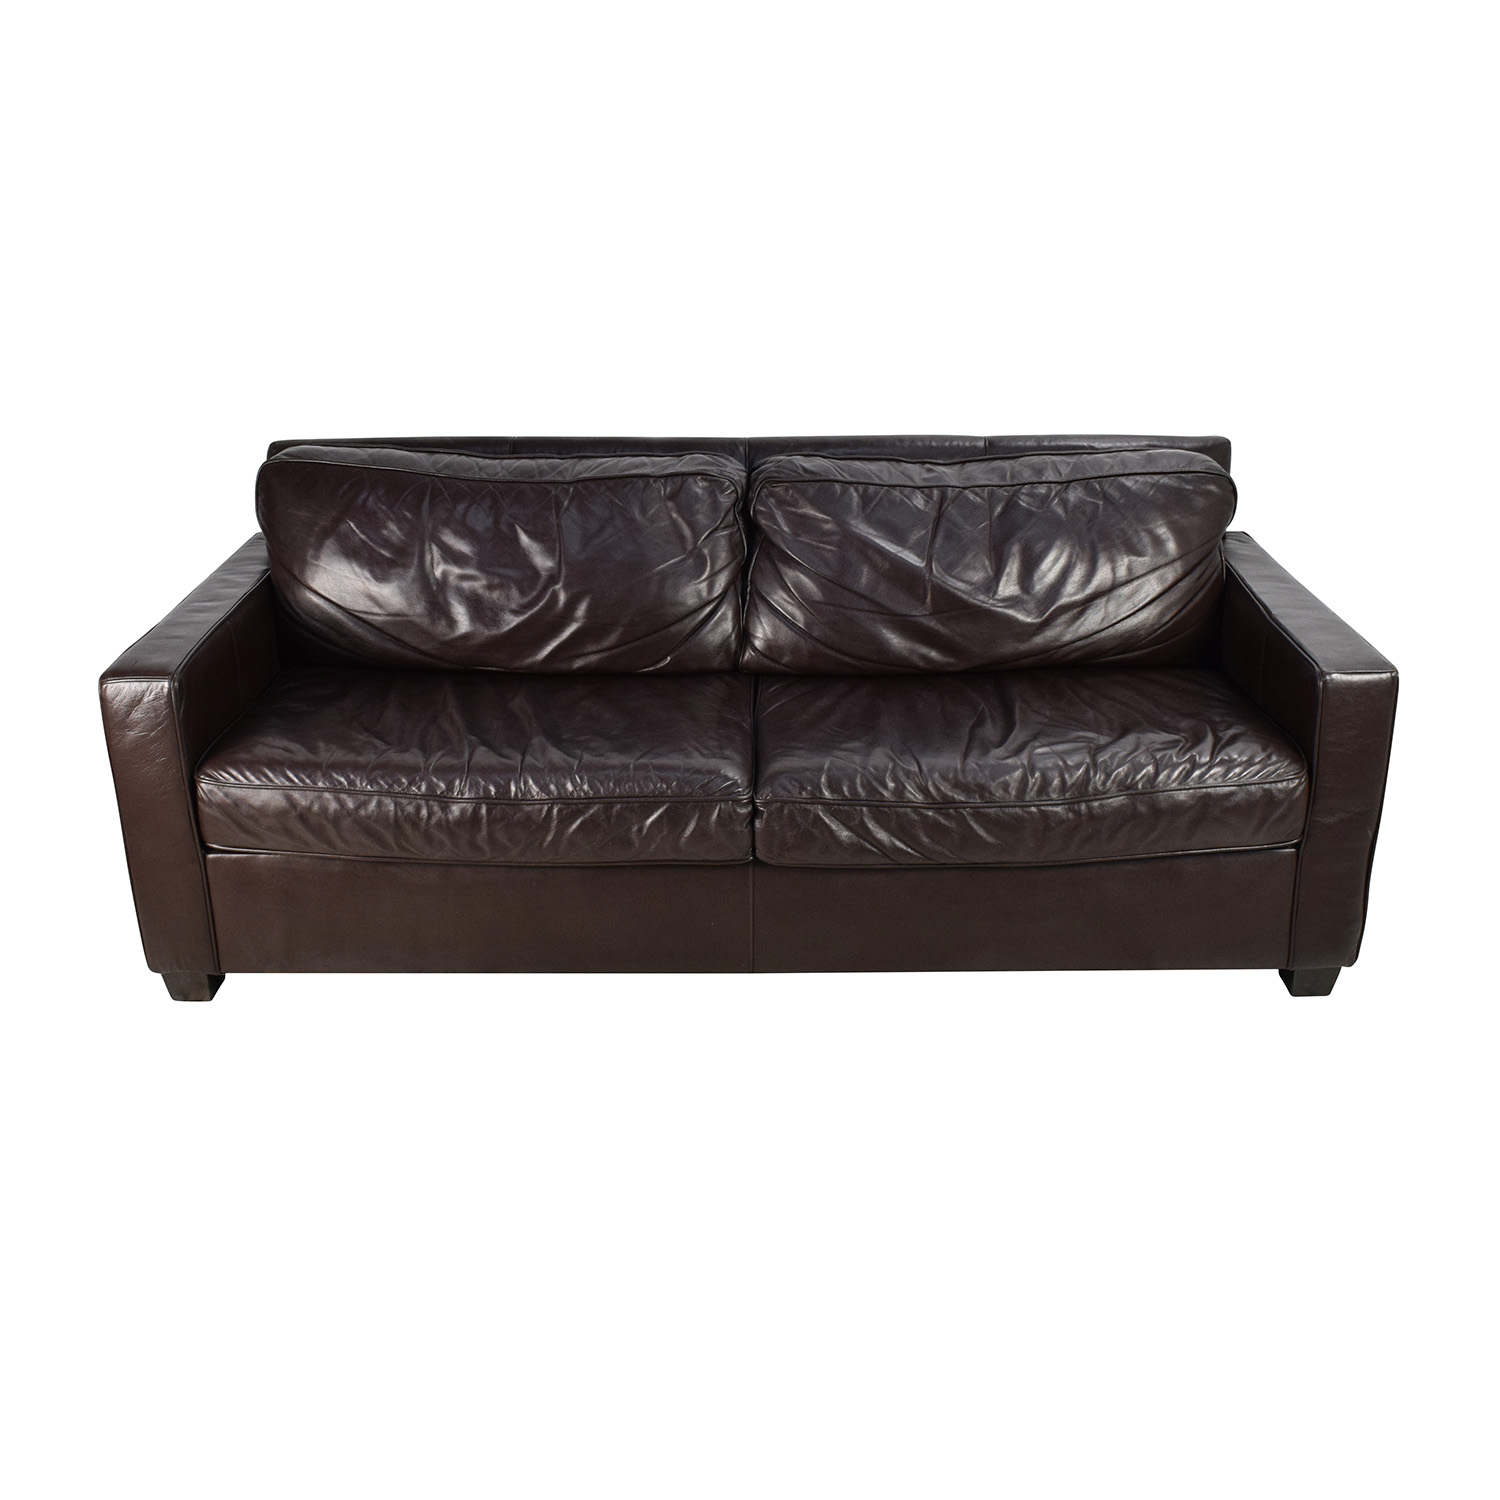 West Elm West Elm Henry Leather Sofa Used